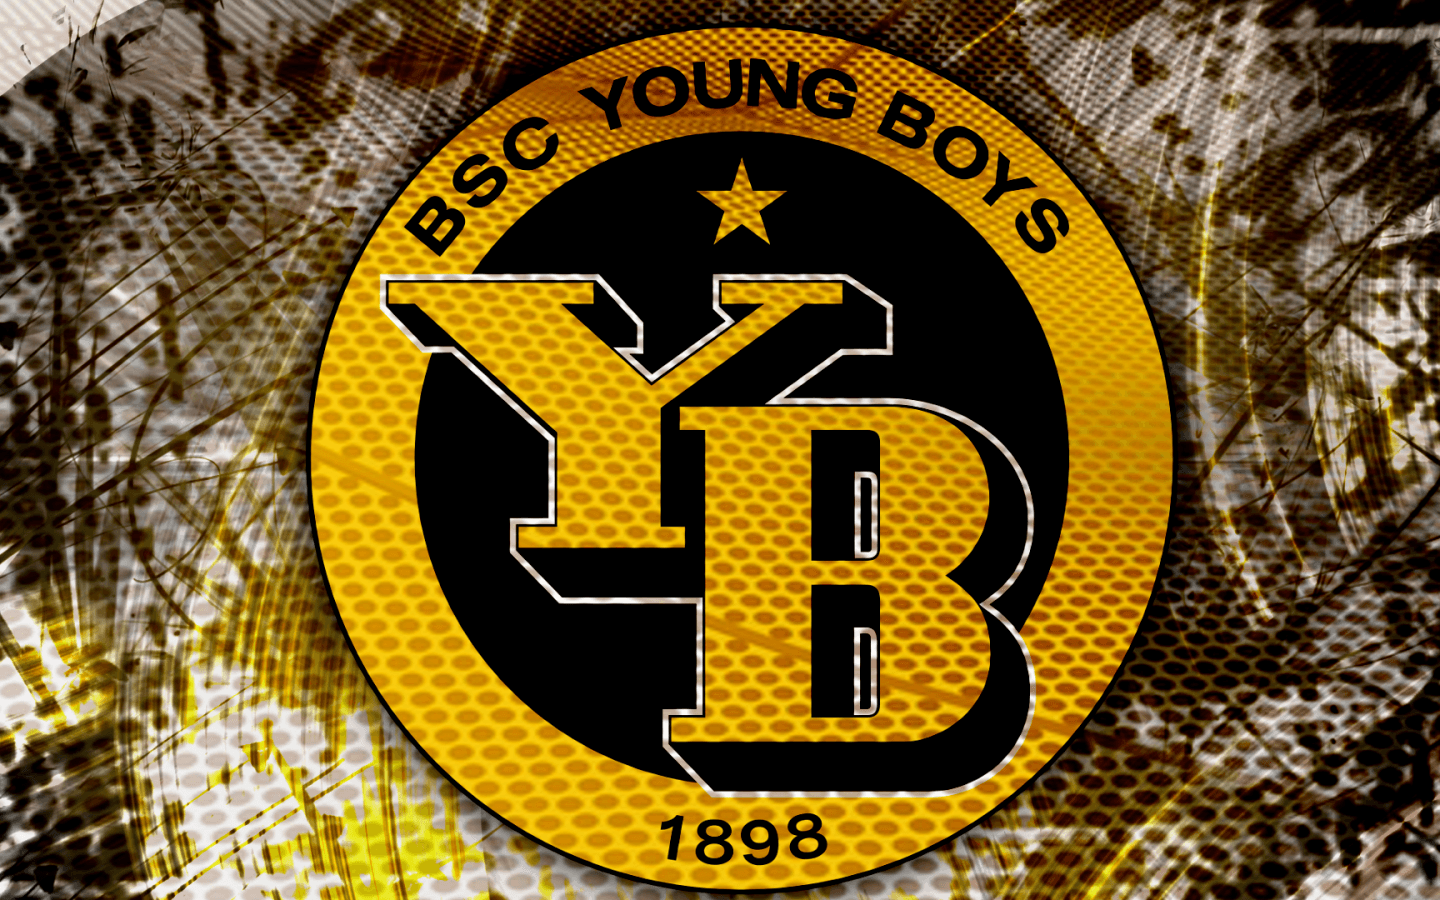 BSC Young Boys Teams Background